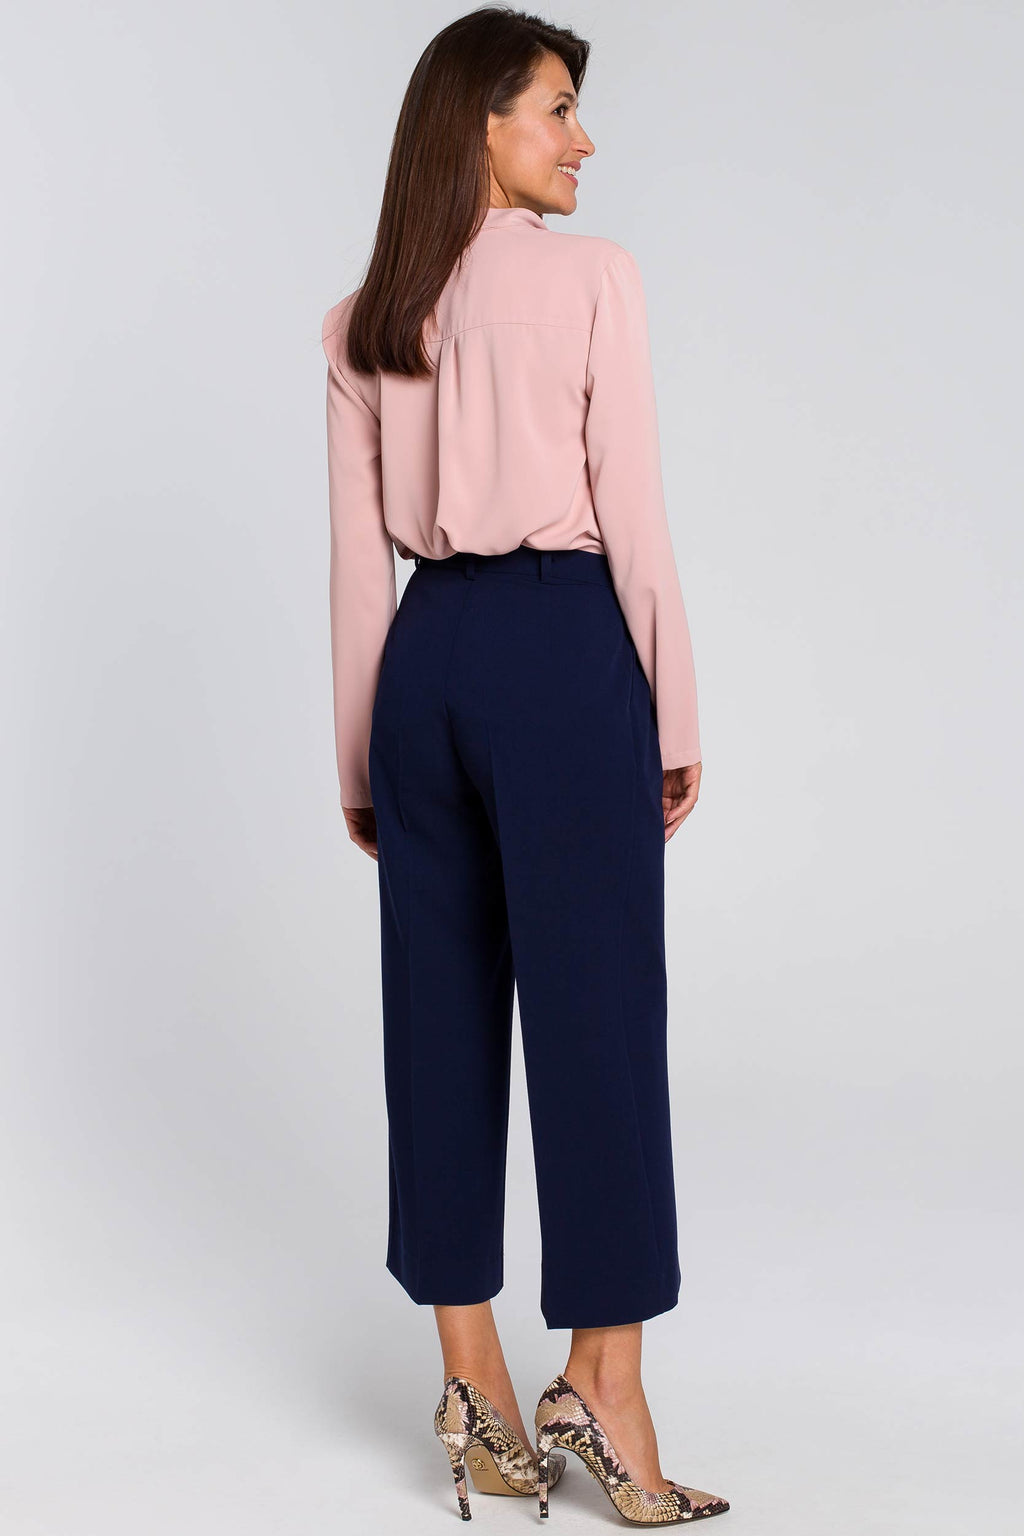 Navy Blue Culottes With Pleated Waist - So Chic Boutique